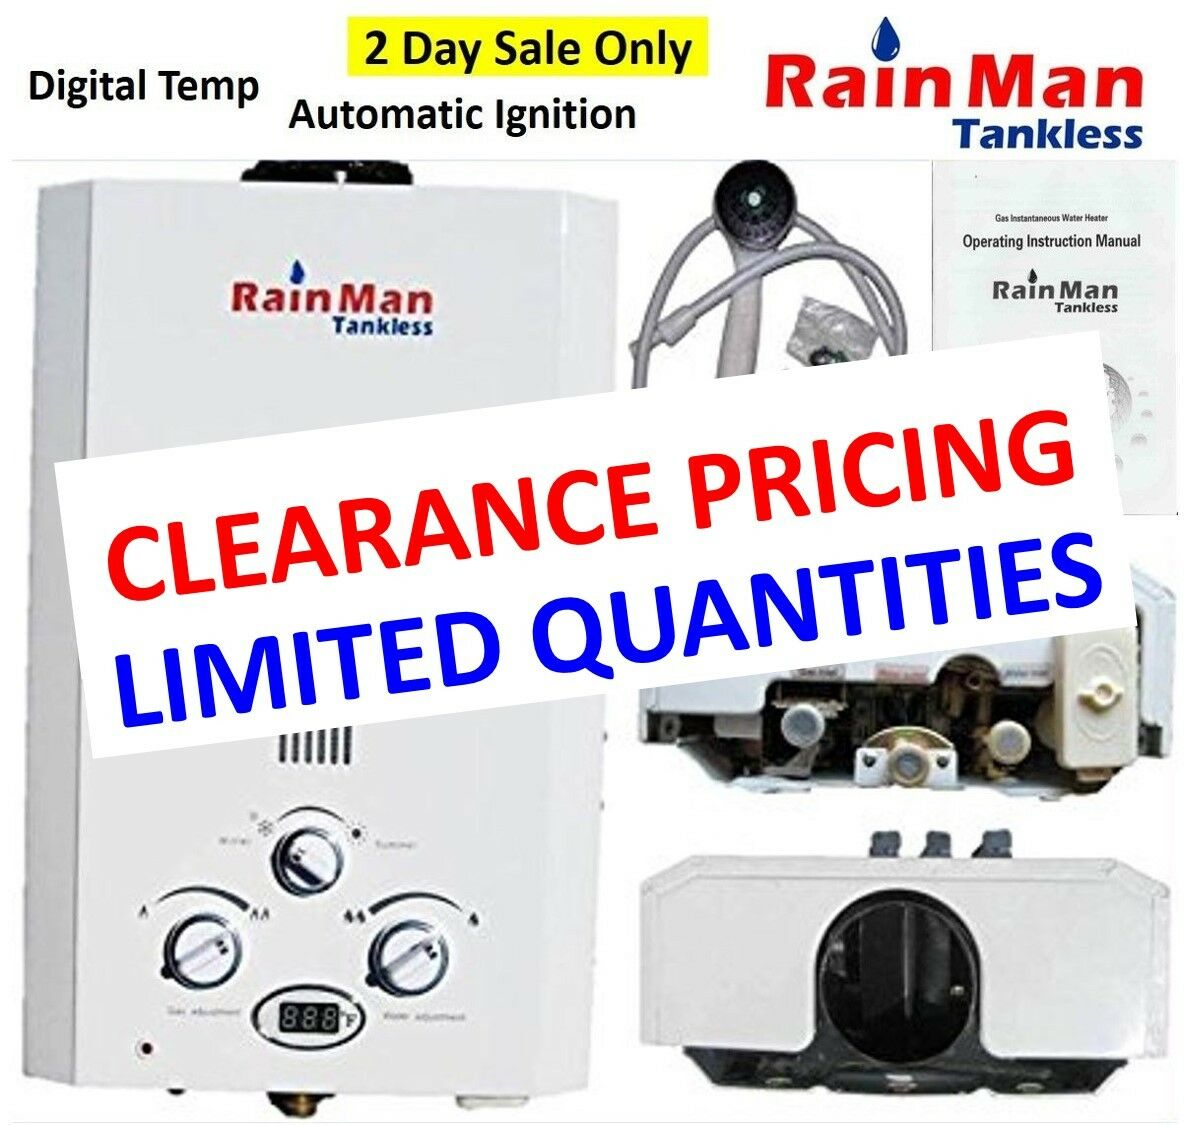 Rain Man L6 Tankless Water Heater LPG Liquid Propane 2.0 GPM